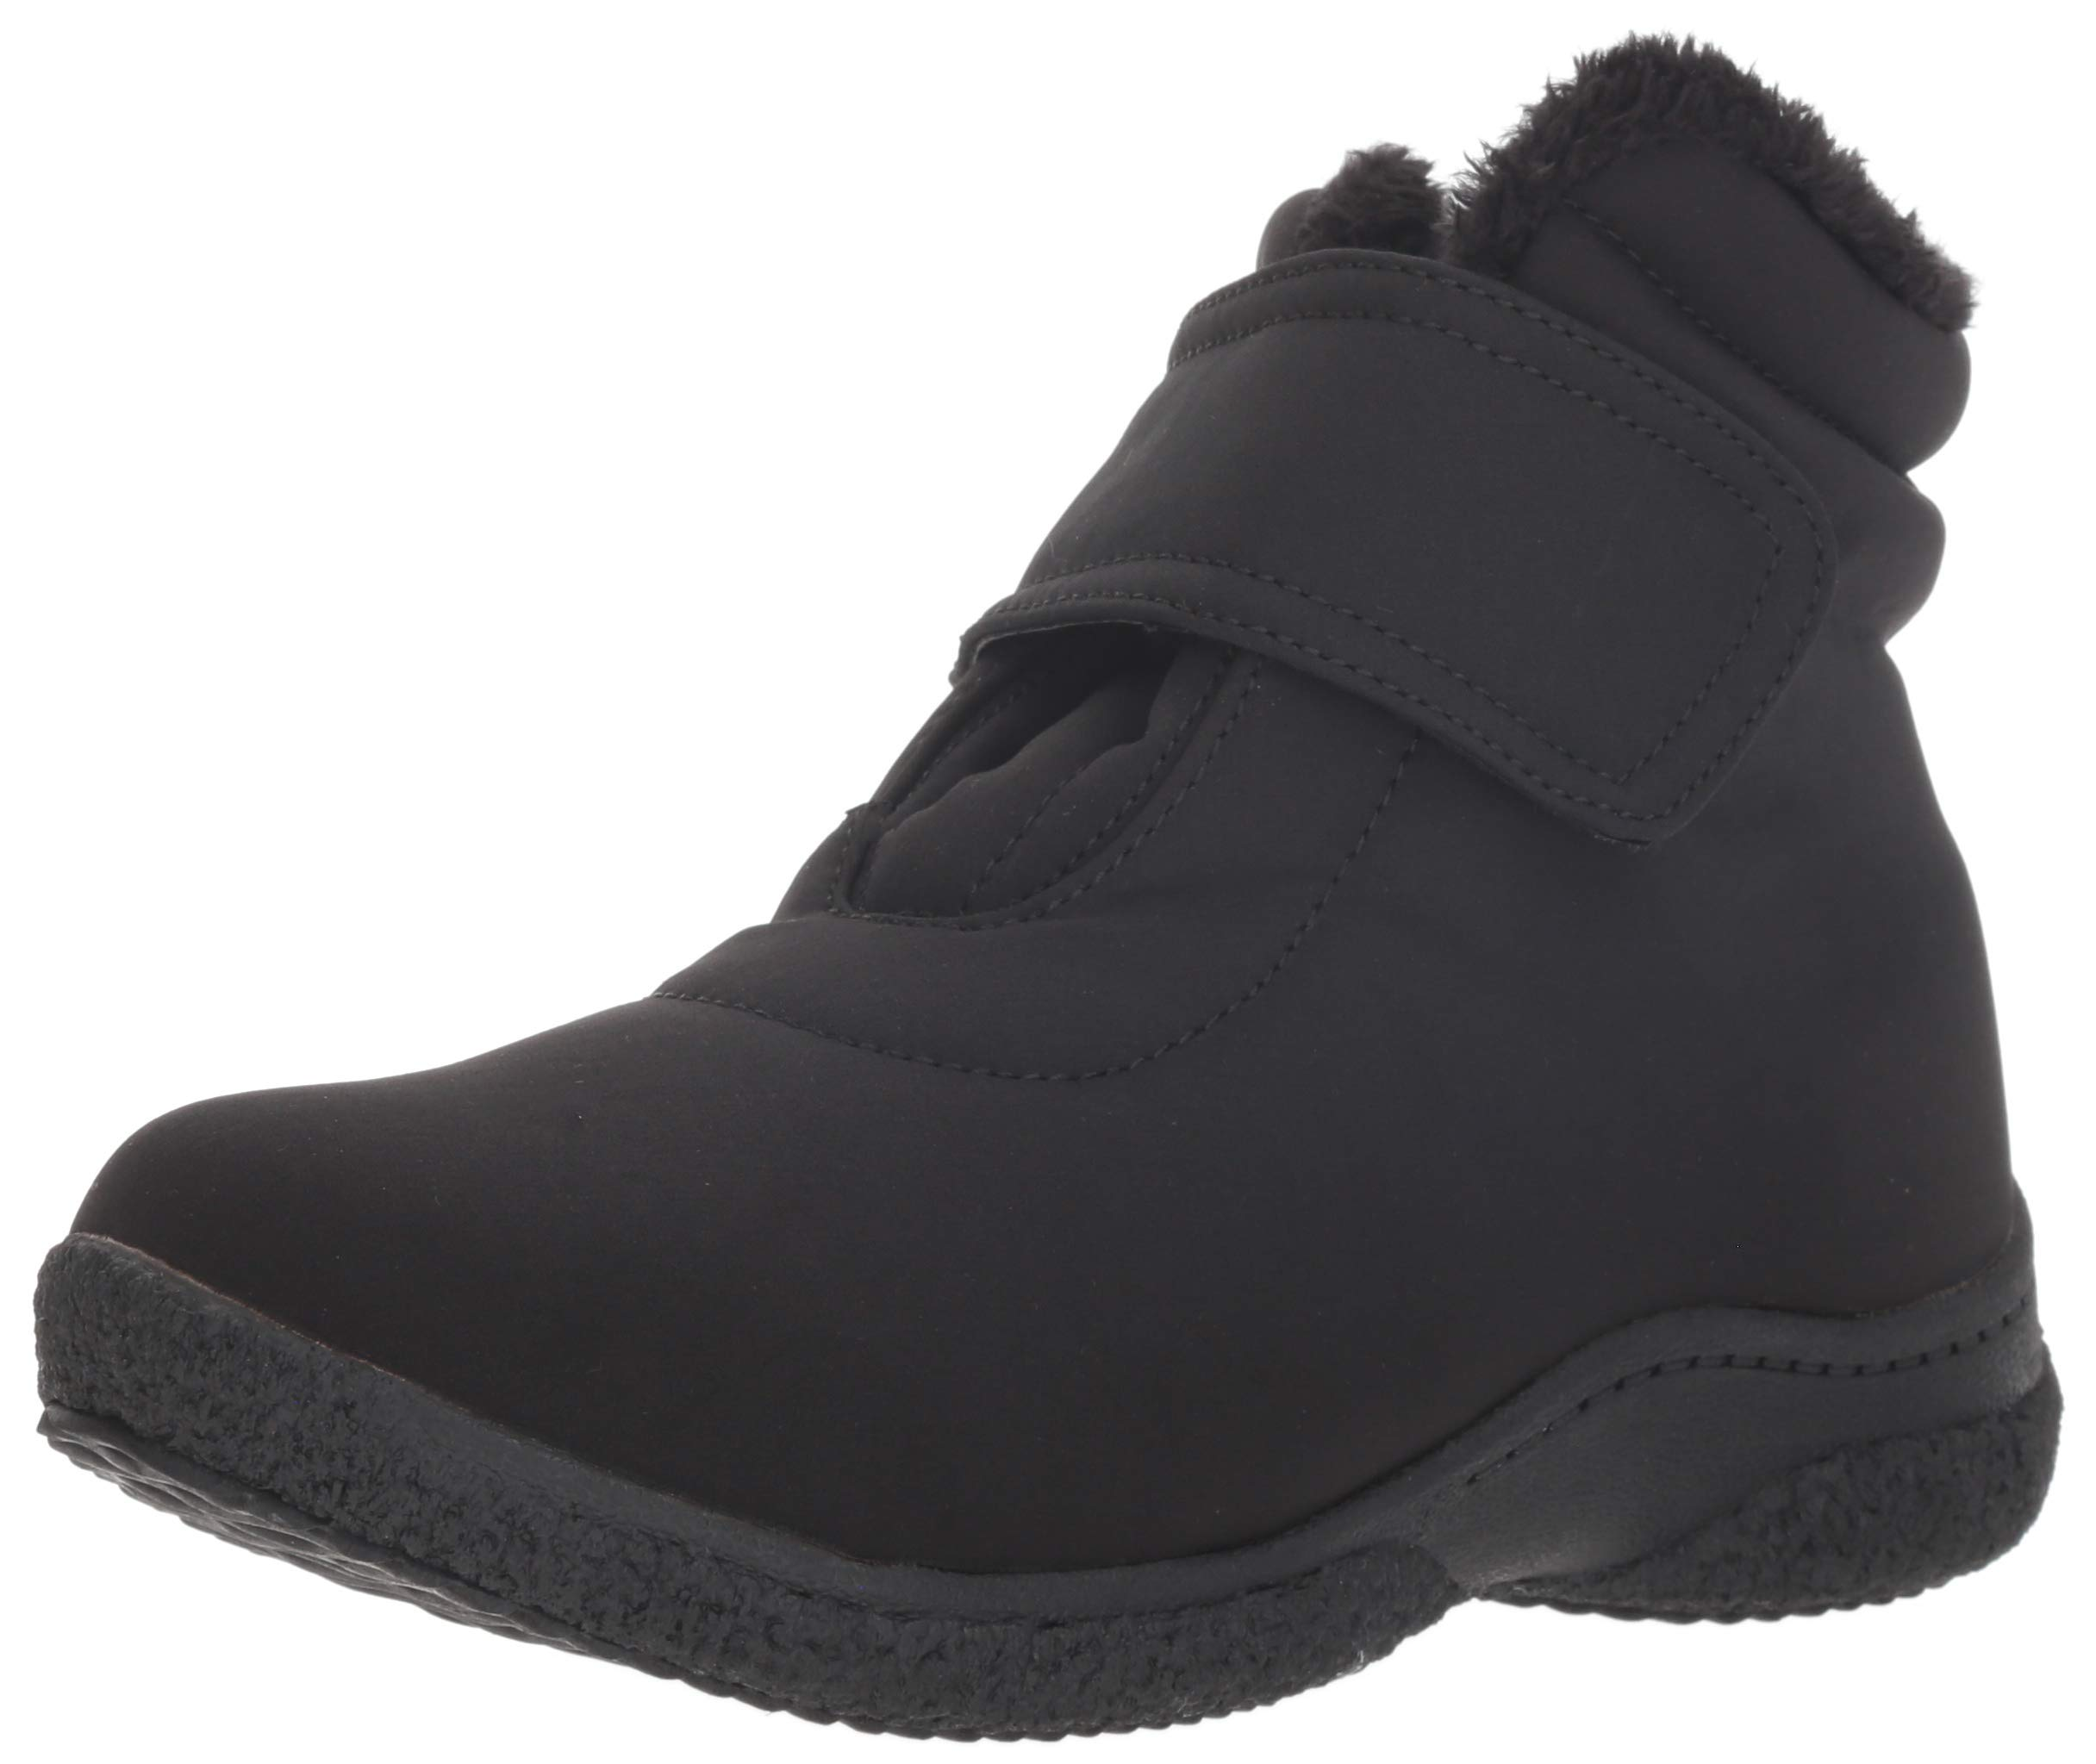 Propet Women's Madi Ankle Strap Snow Boot, Black, 8H Wide Wide US by Propét